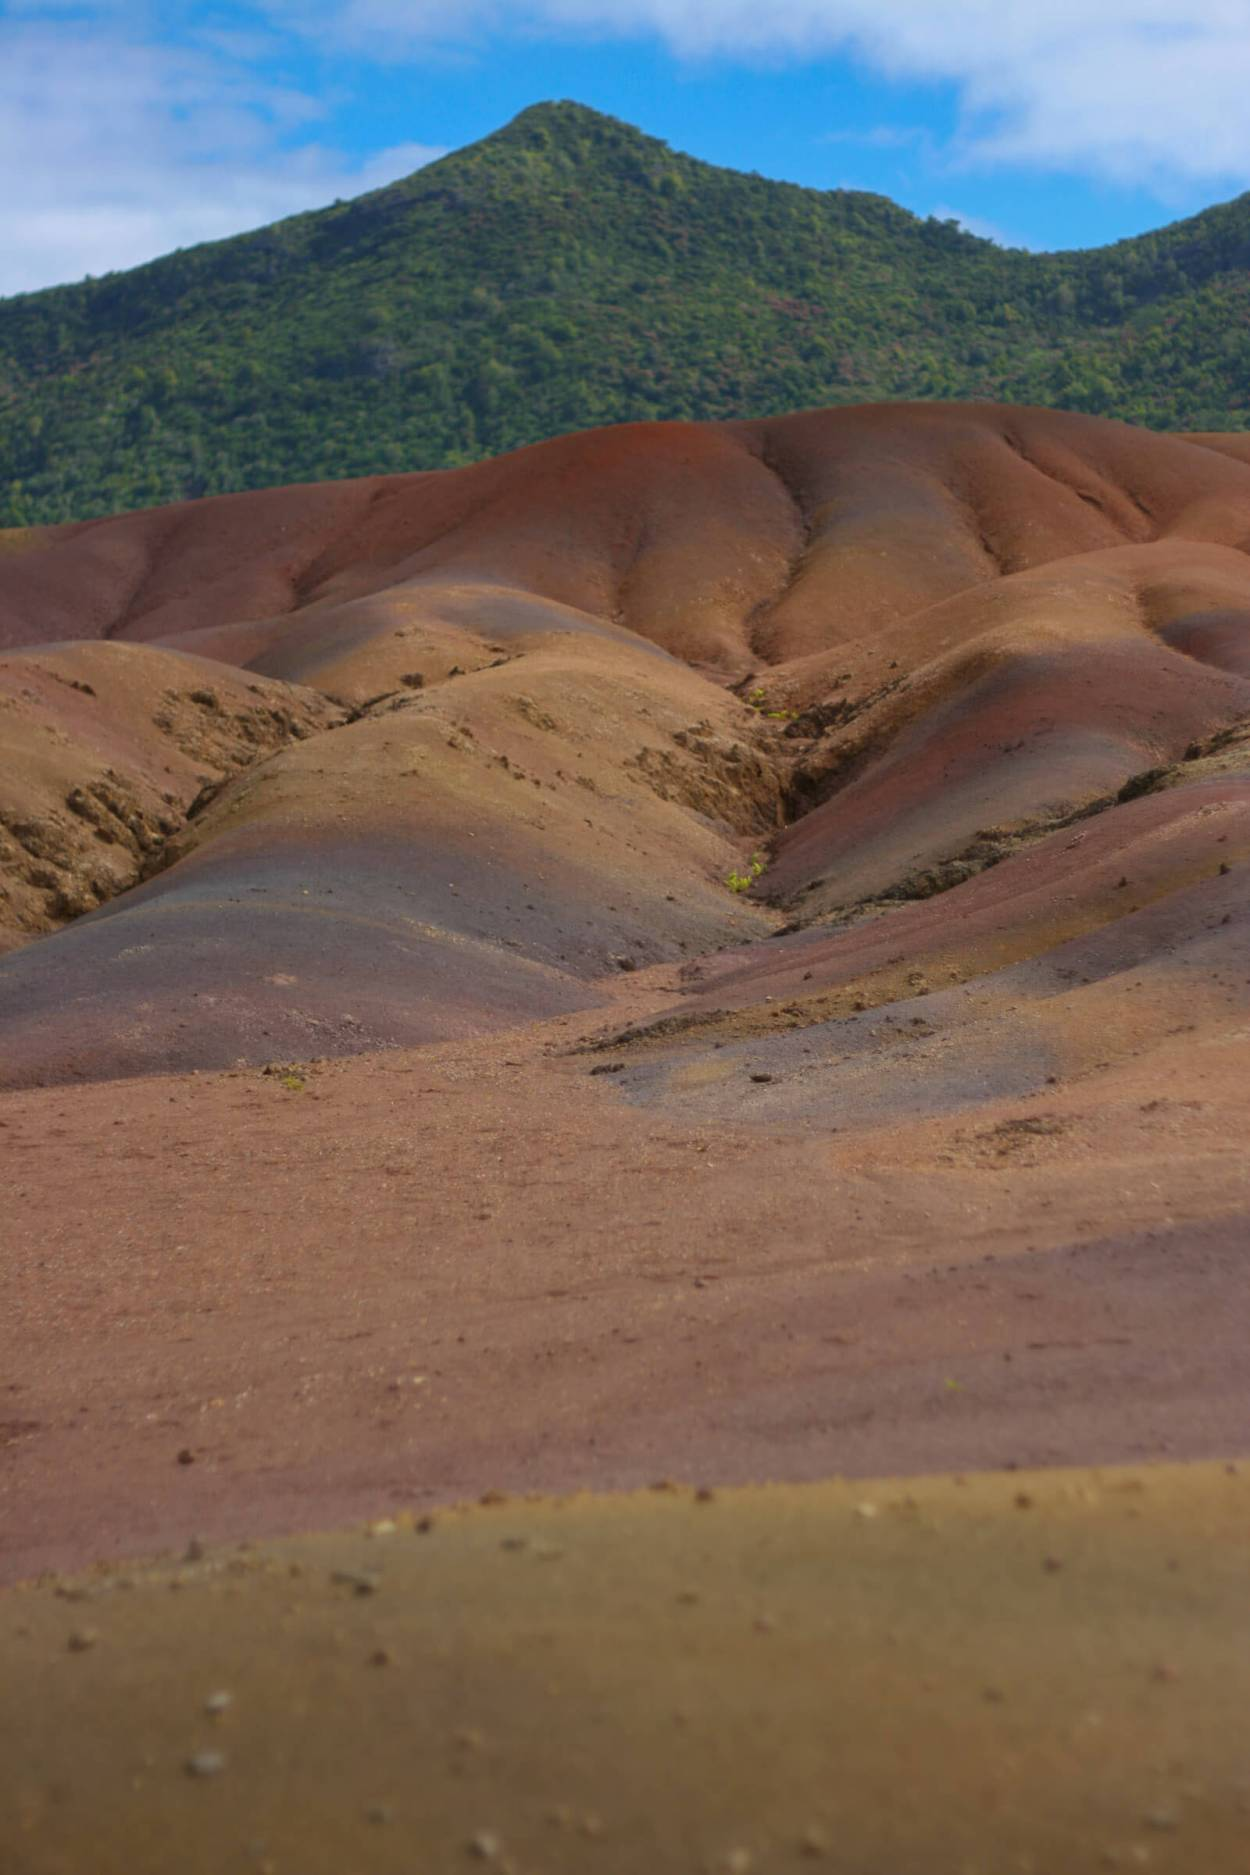 The 7-colored sands of Mauritius are a geological wonder and still unexplained by scientists